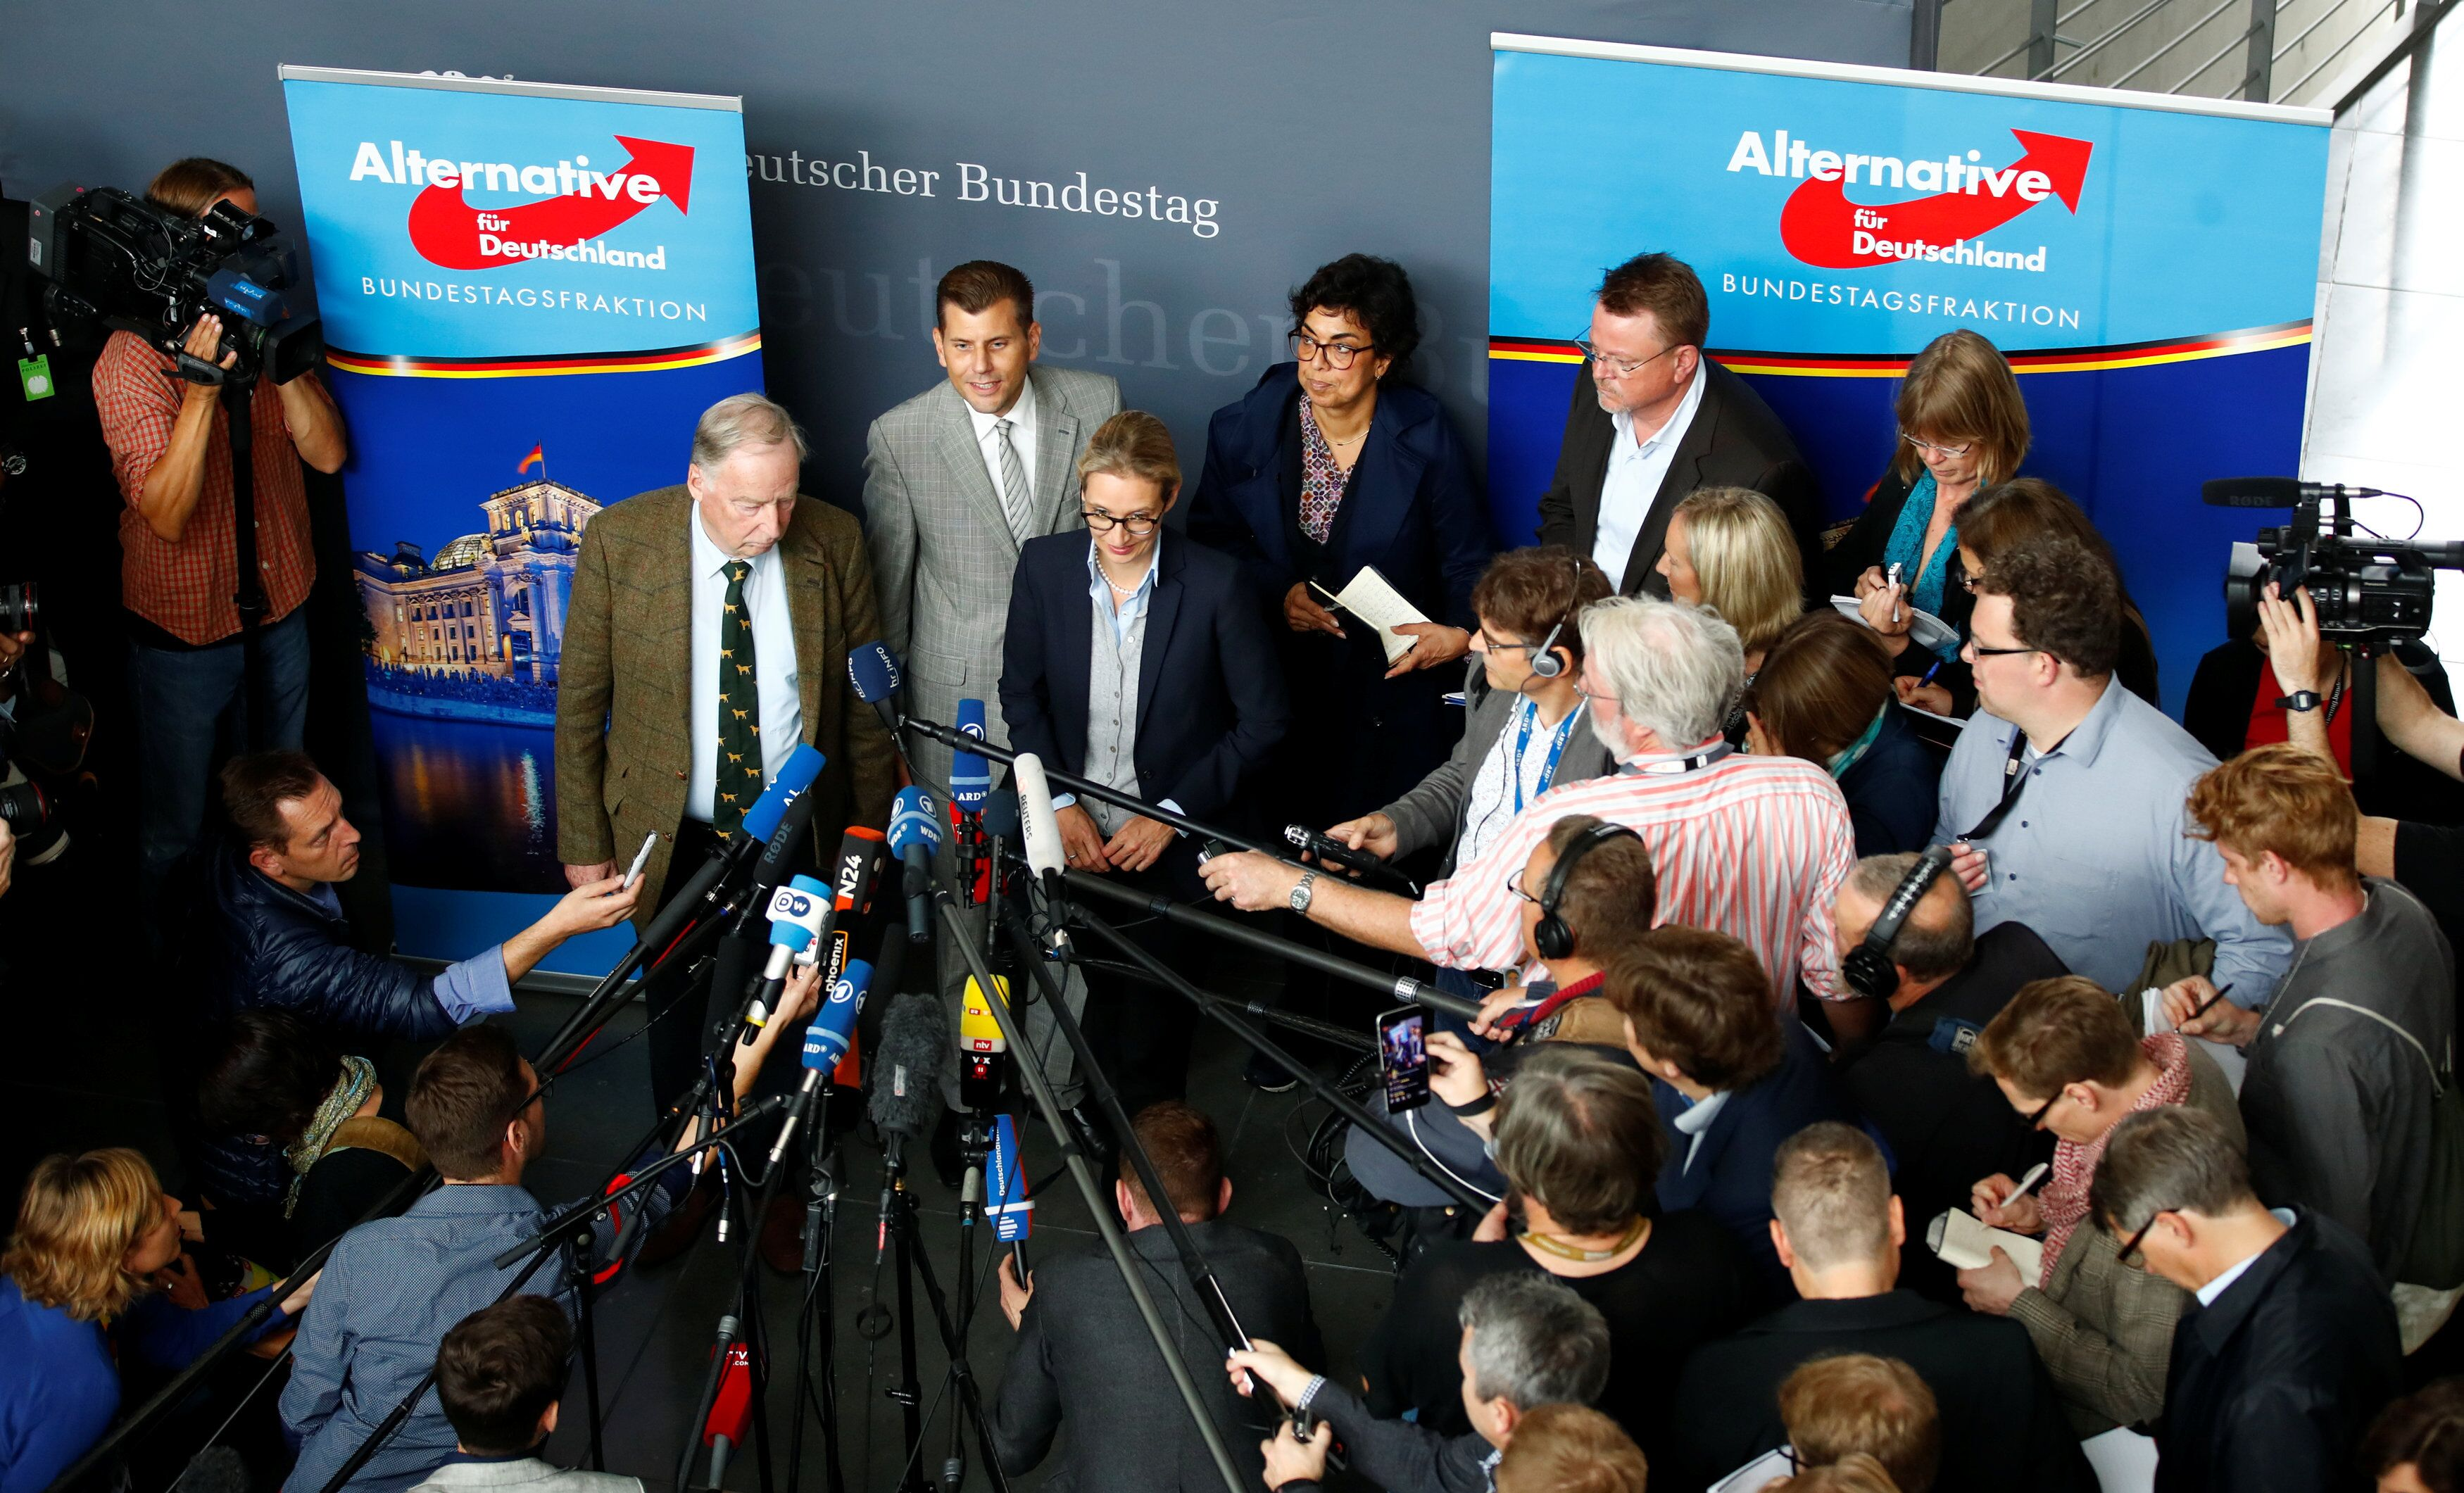 AfD says German state, media favor the left — do they